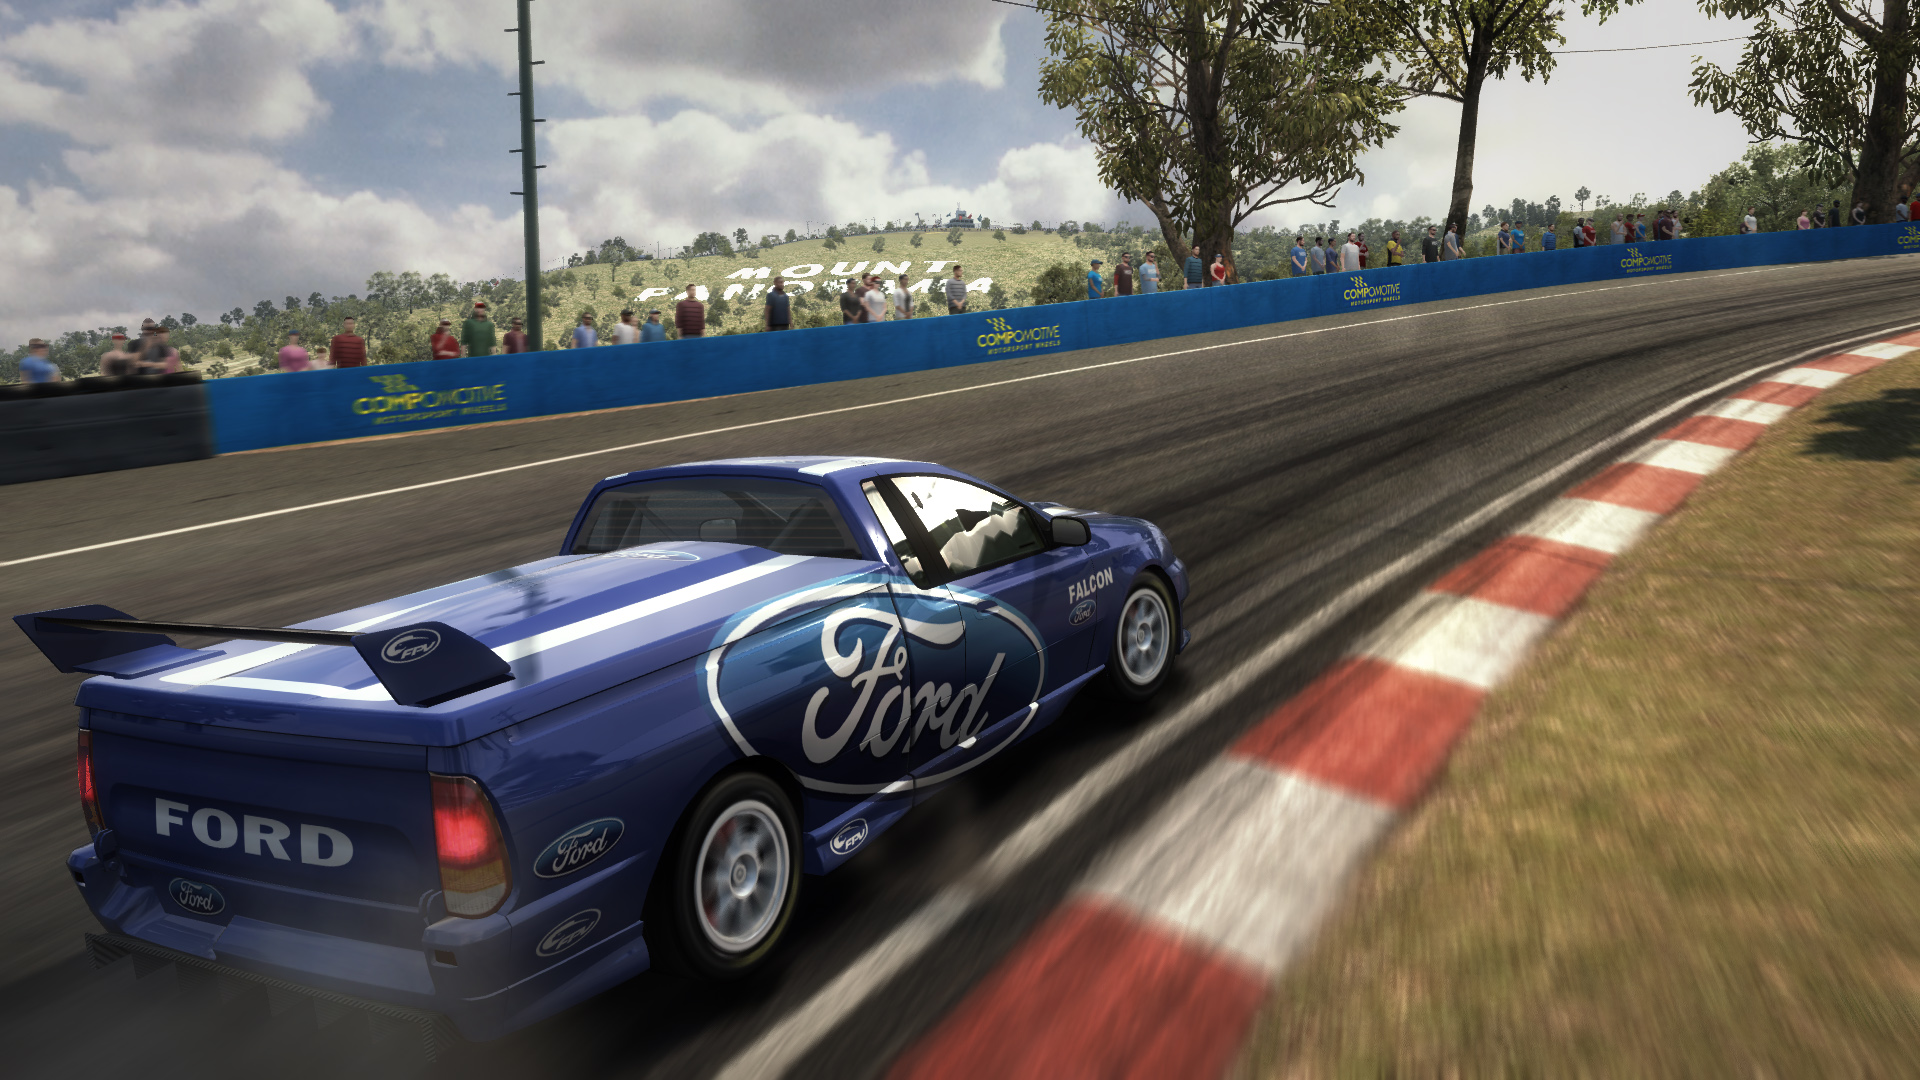 GRID 2 News: 'Bathurst Track Pack' And 'Classic GRID Pack' Released For